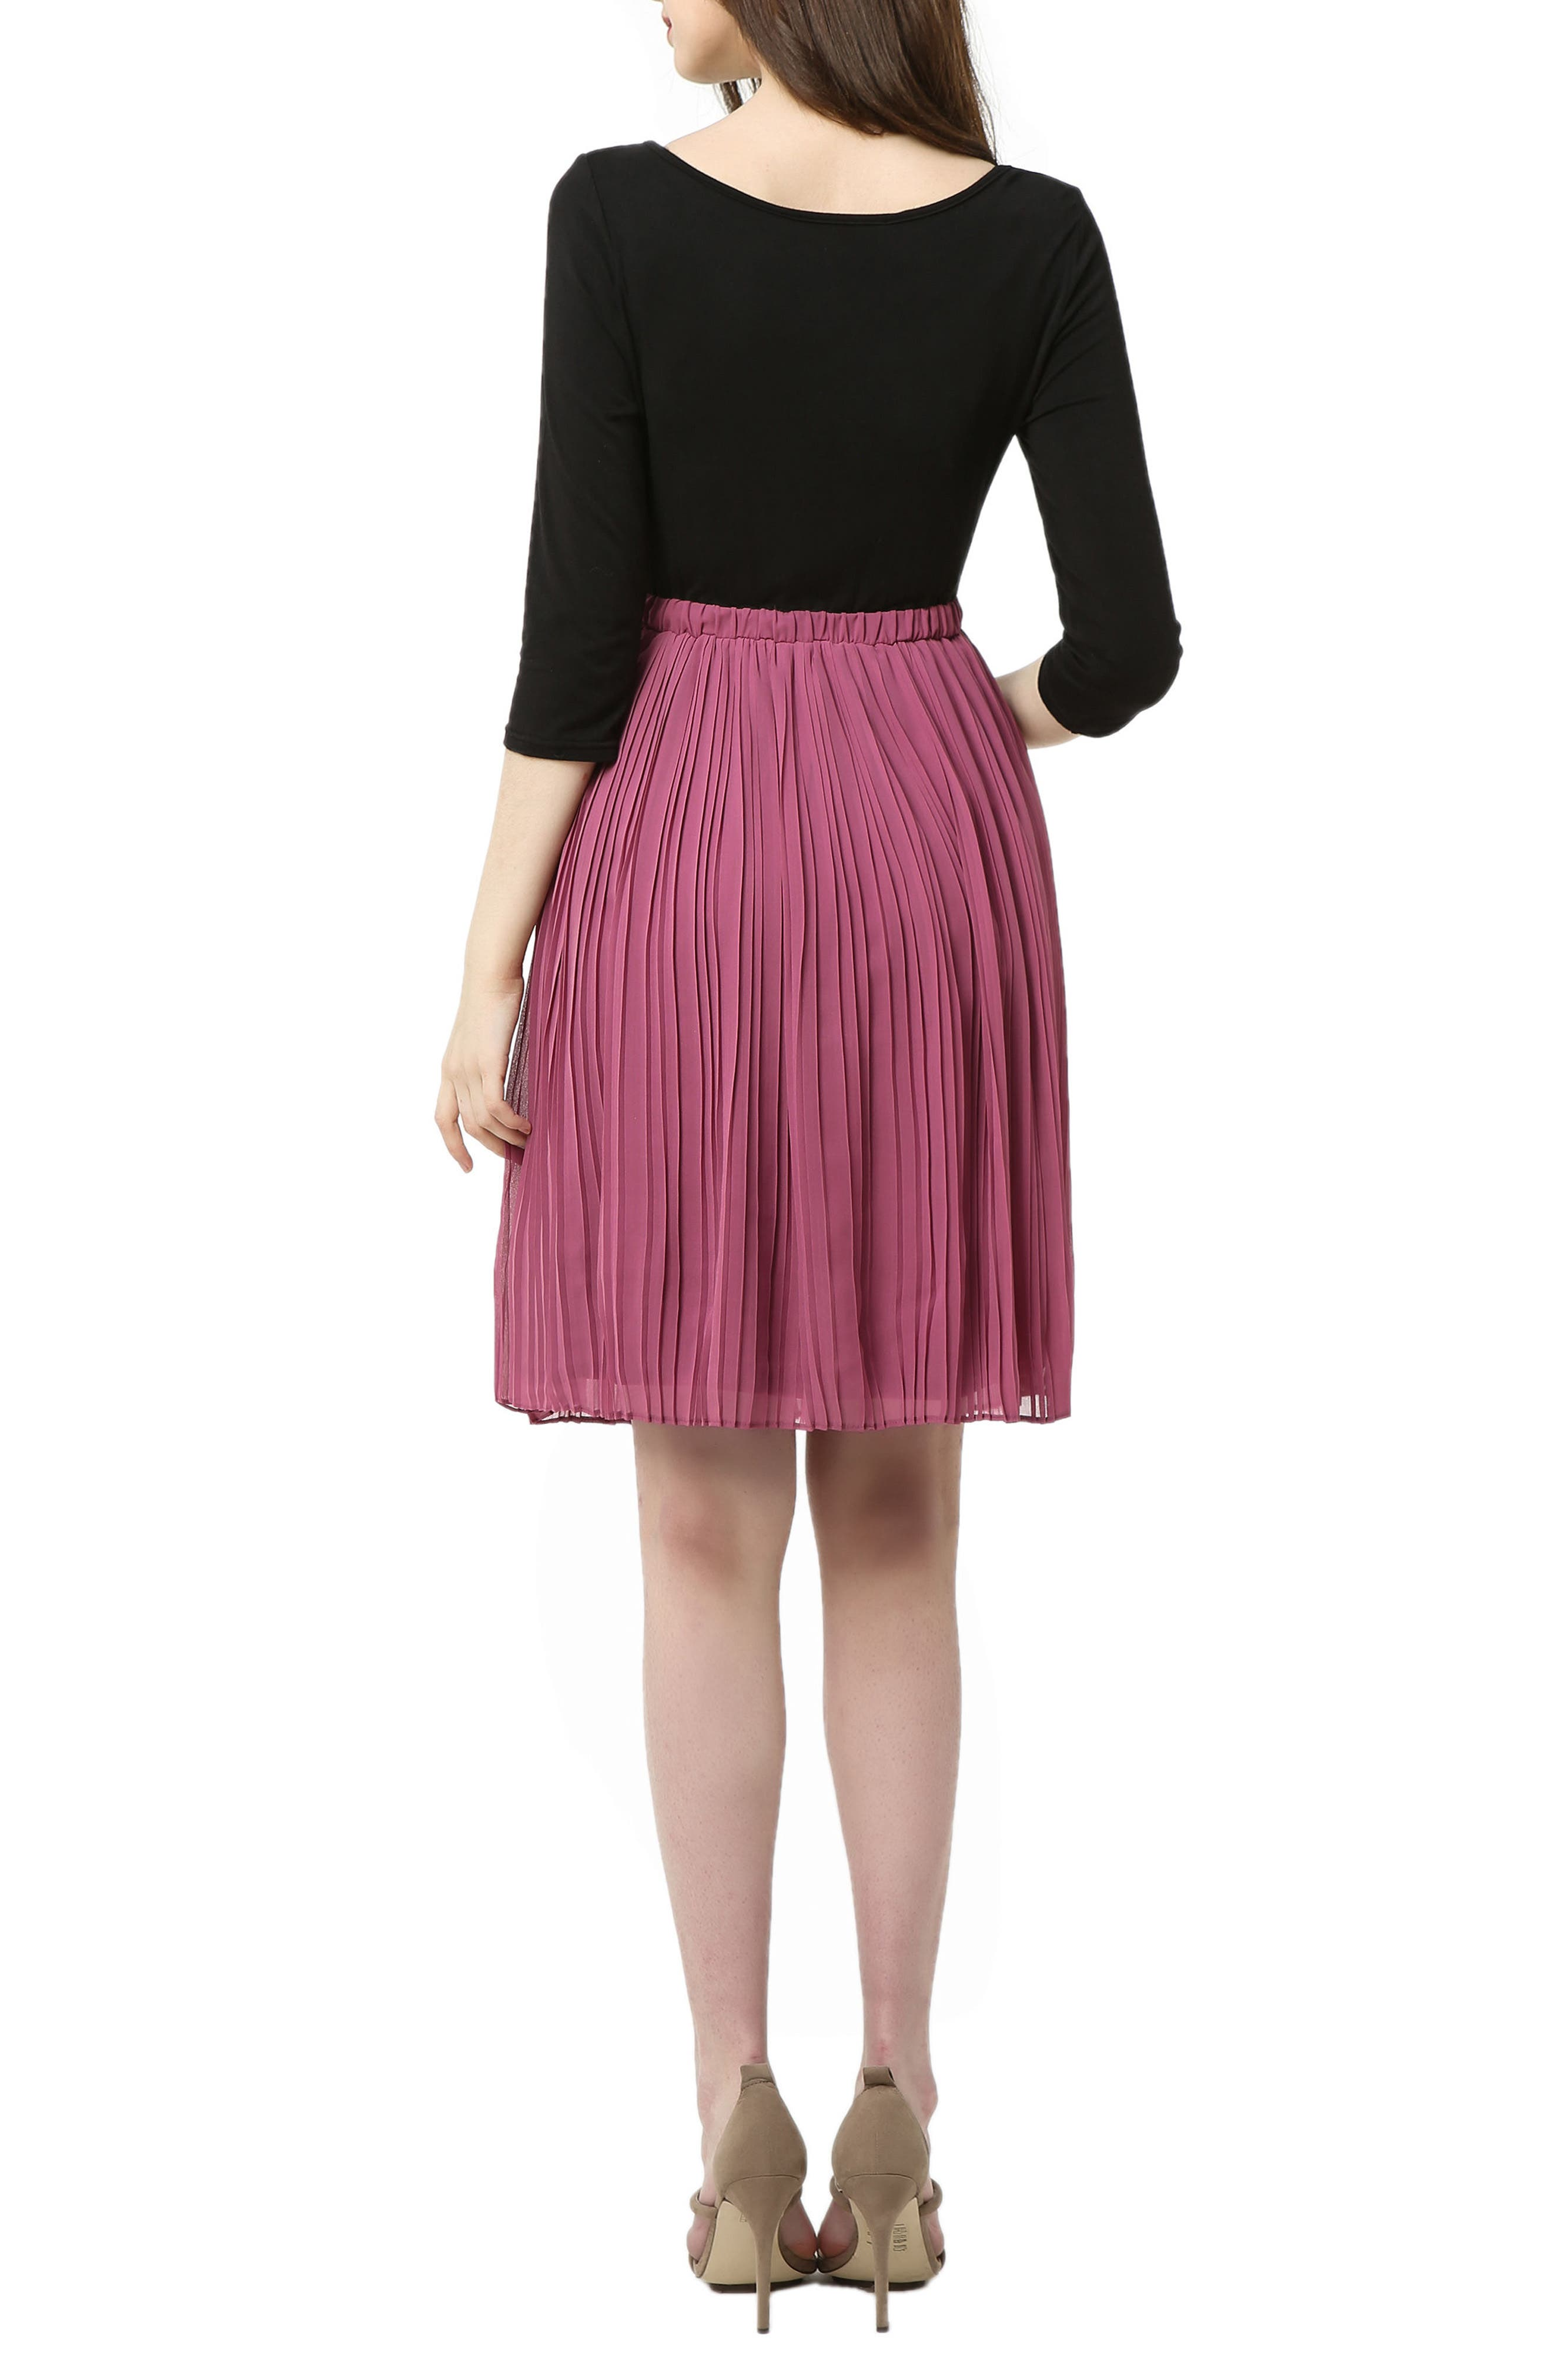 Marie Colorblock Pleat Skirt Maternity Dress,                             Alternate thumbnail 2, color,                             BLACK